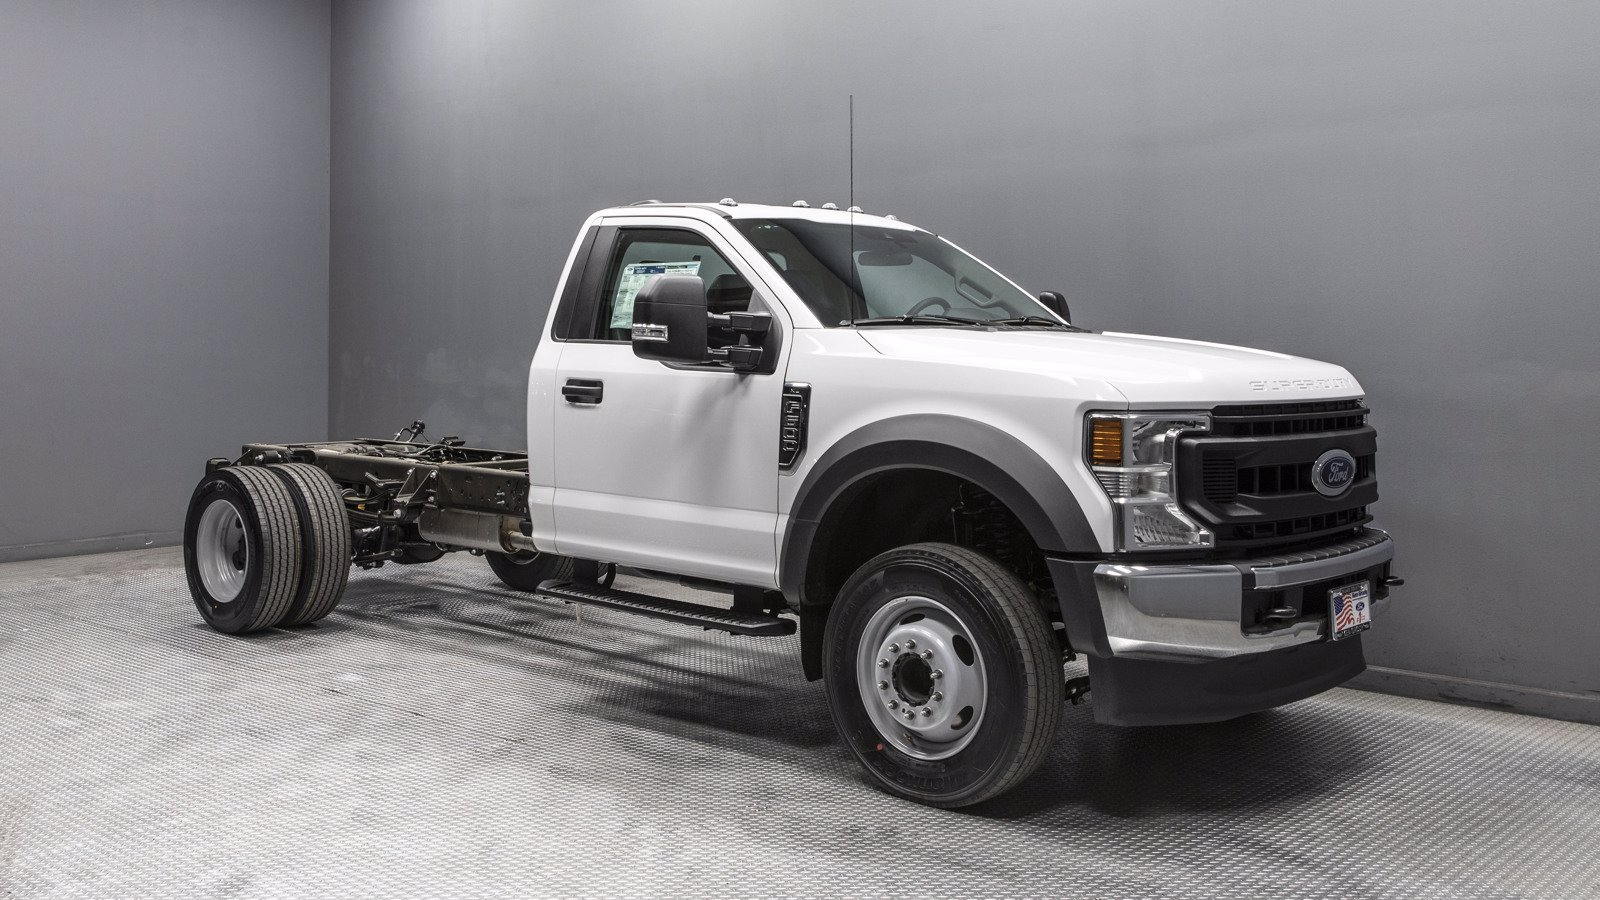 2020 Ford F-600 Regular Cab DRW 4x2, Cab Chassis #04040 - photo 1